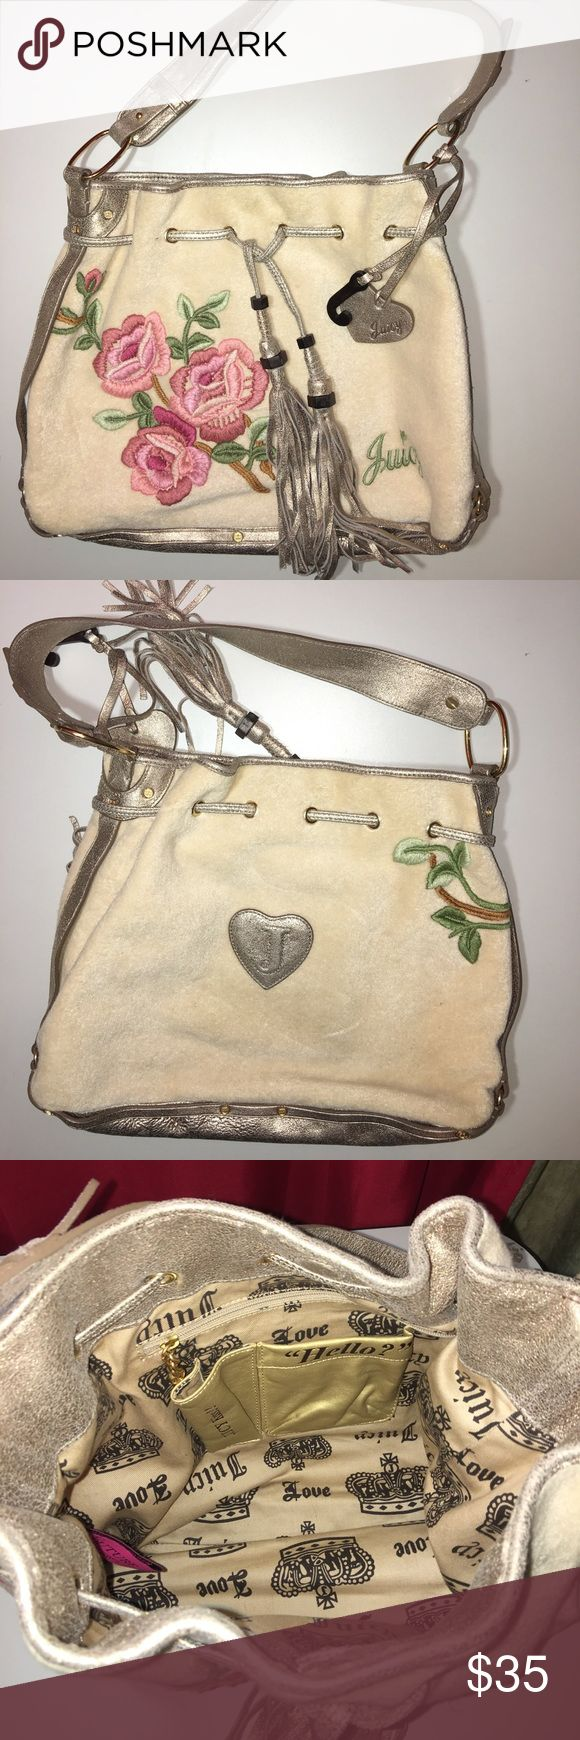 JUICY COUTURE Handbag/Purse JUICY COUTURE Handbag/Purse Excellent condition no stains rips or holes beautiful rose juicy bag Juicy Couture Bags Totes